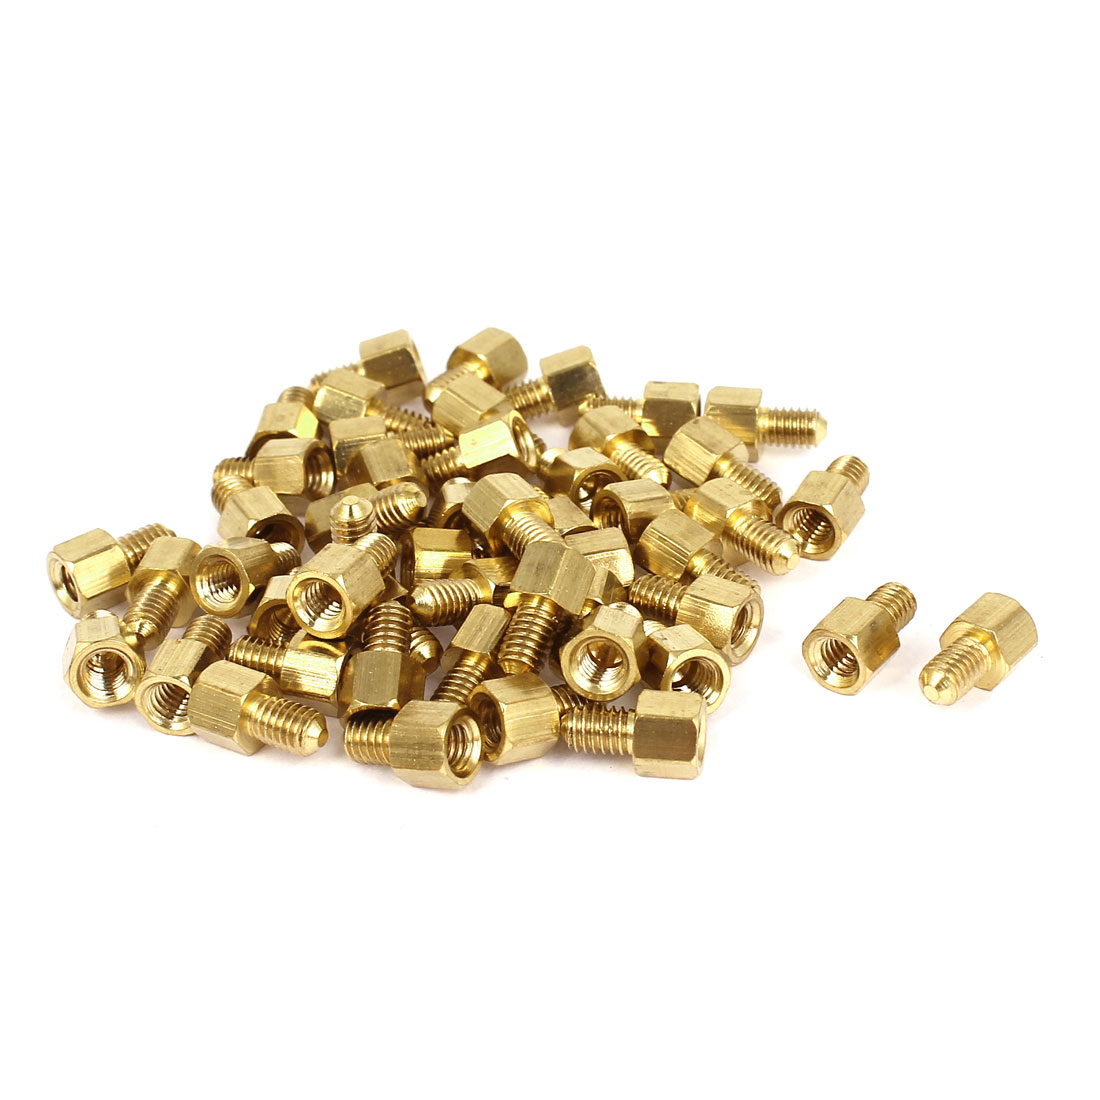 Motherboard M4x5mm+6mm Female Male Threaded Brass Hex Standoff Spacer 50 Pcs